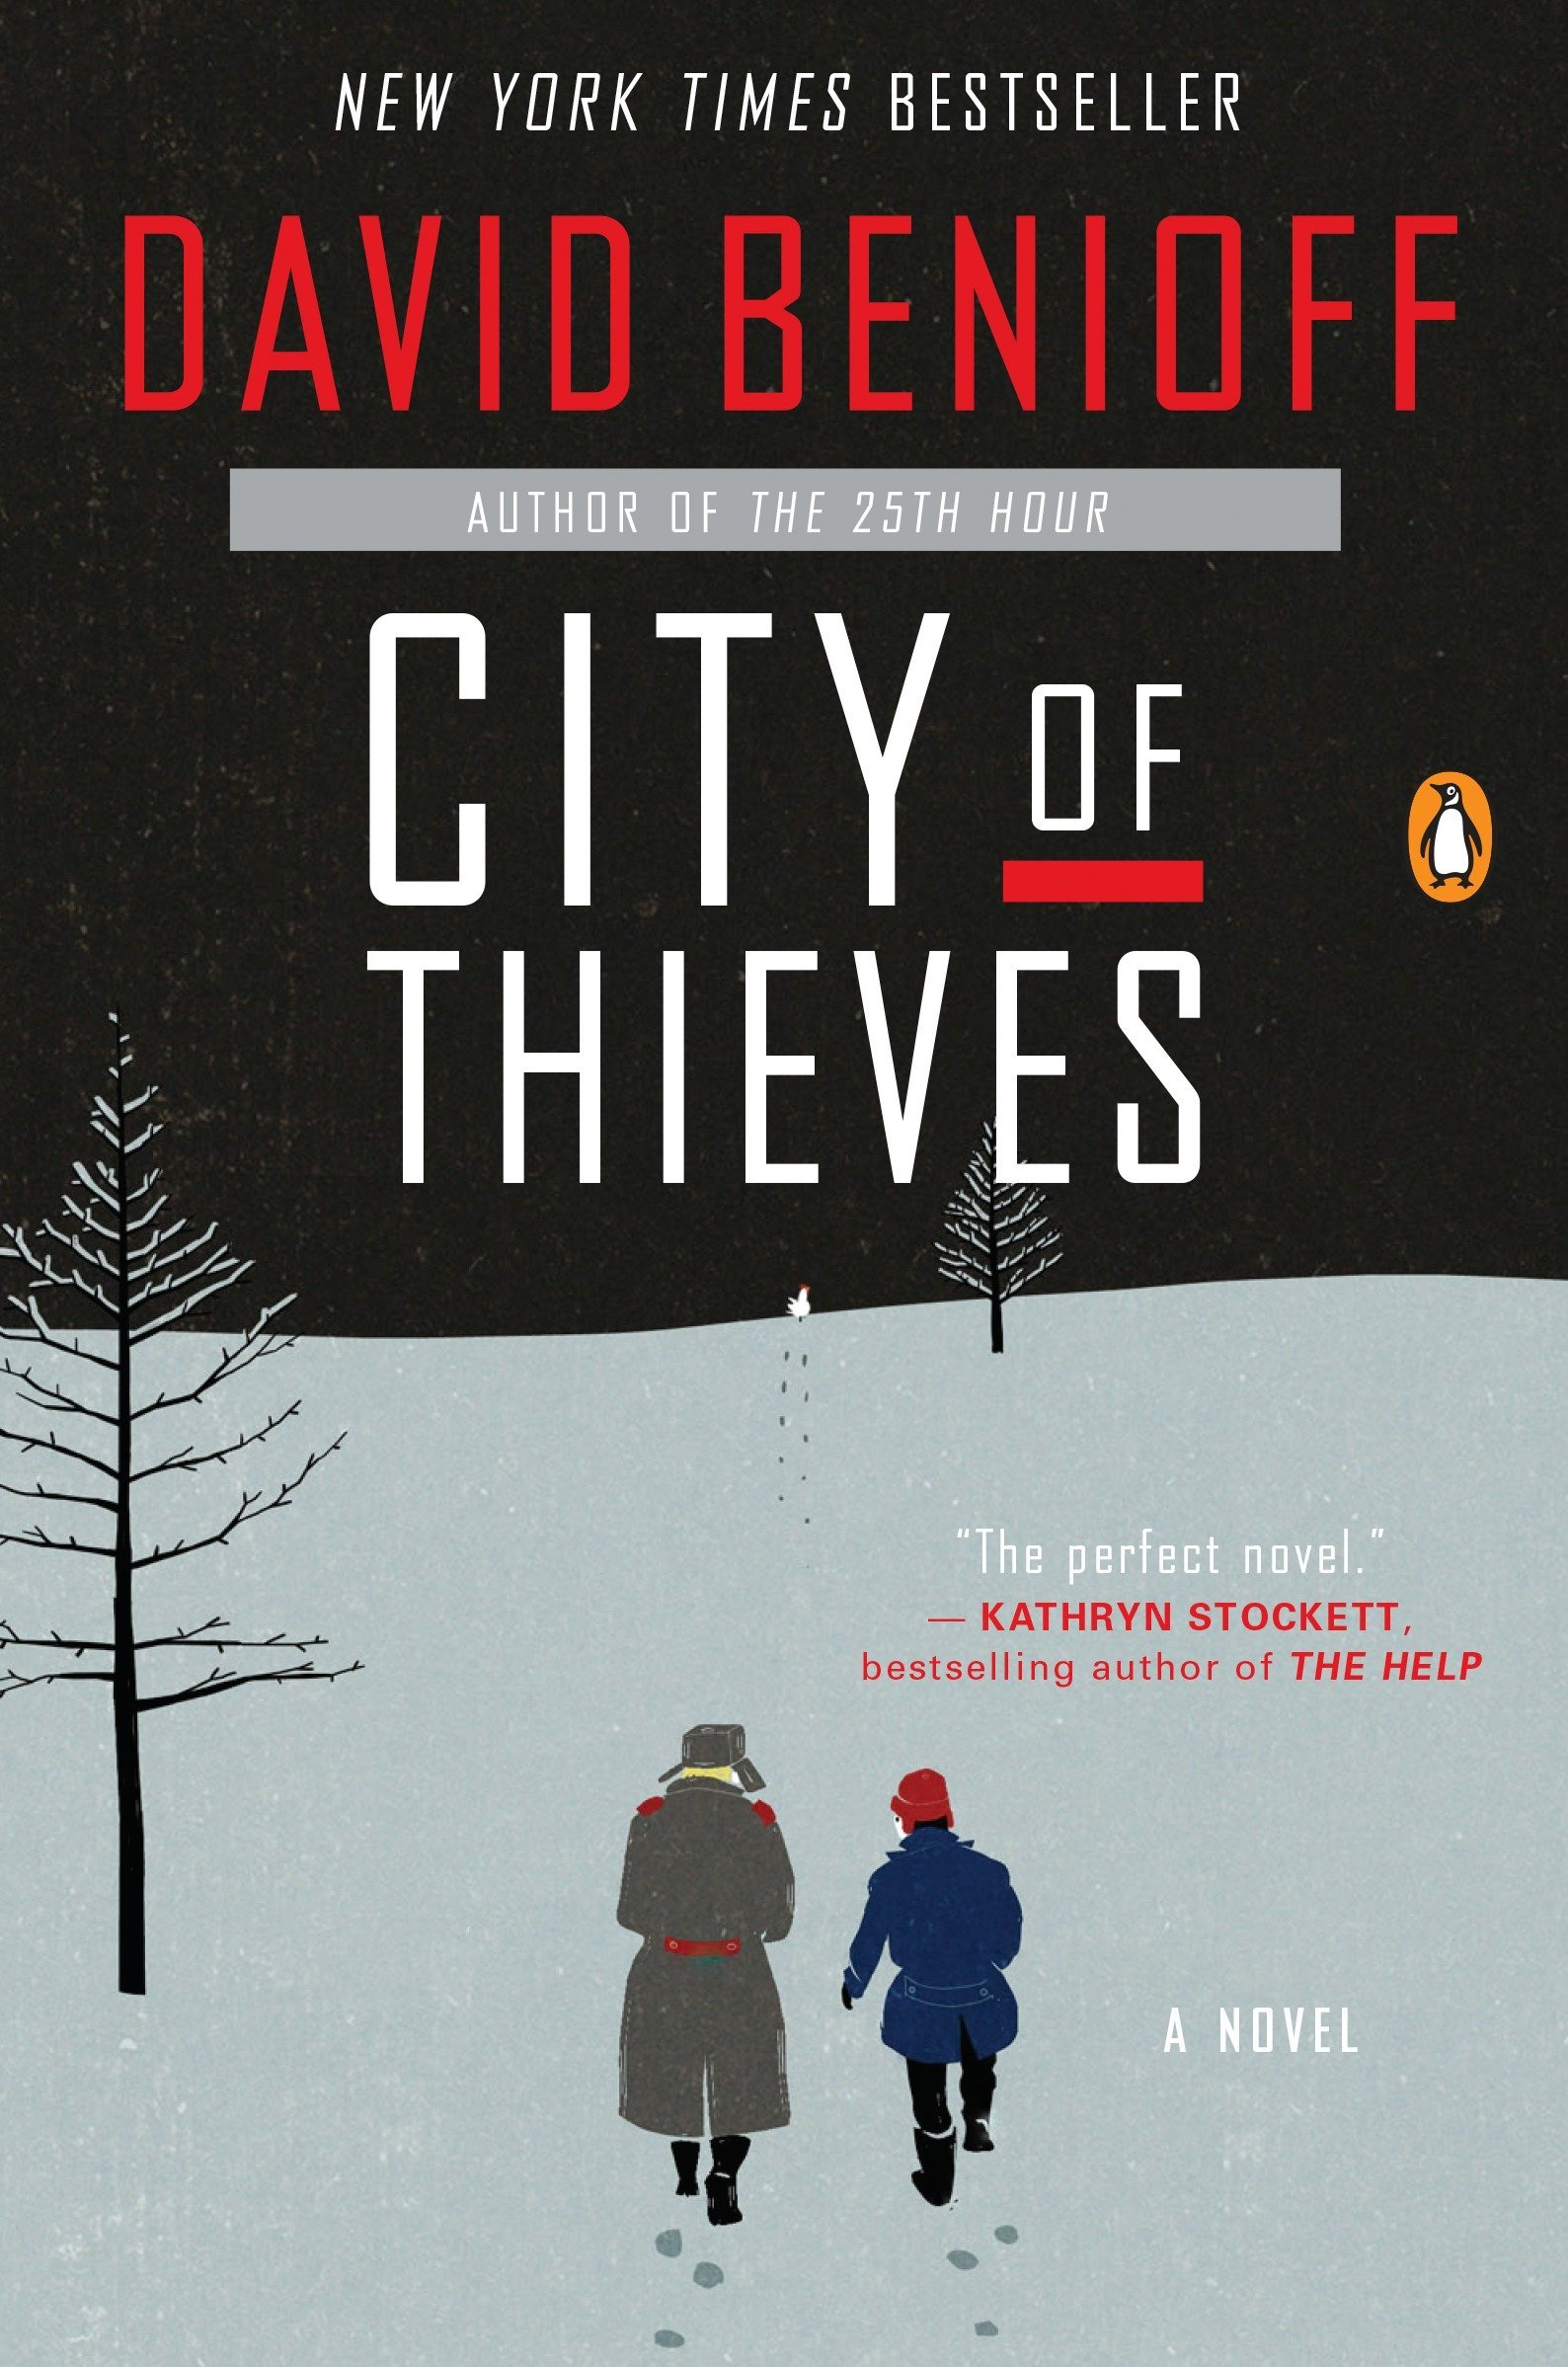 How To Make A Book Cover Look Old And Worn ~ Amazon.com: city of thieves: a novel 9780452295292 : david benioff